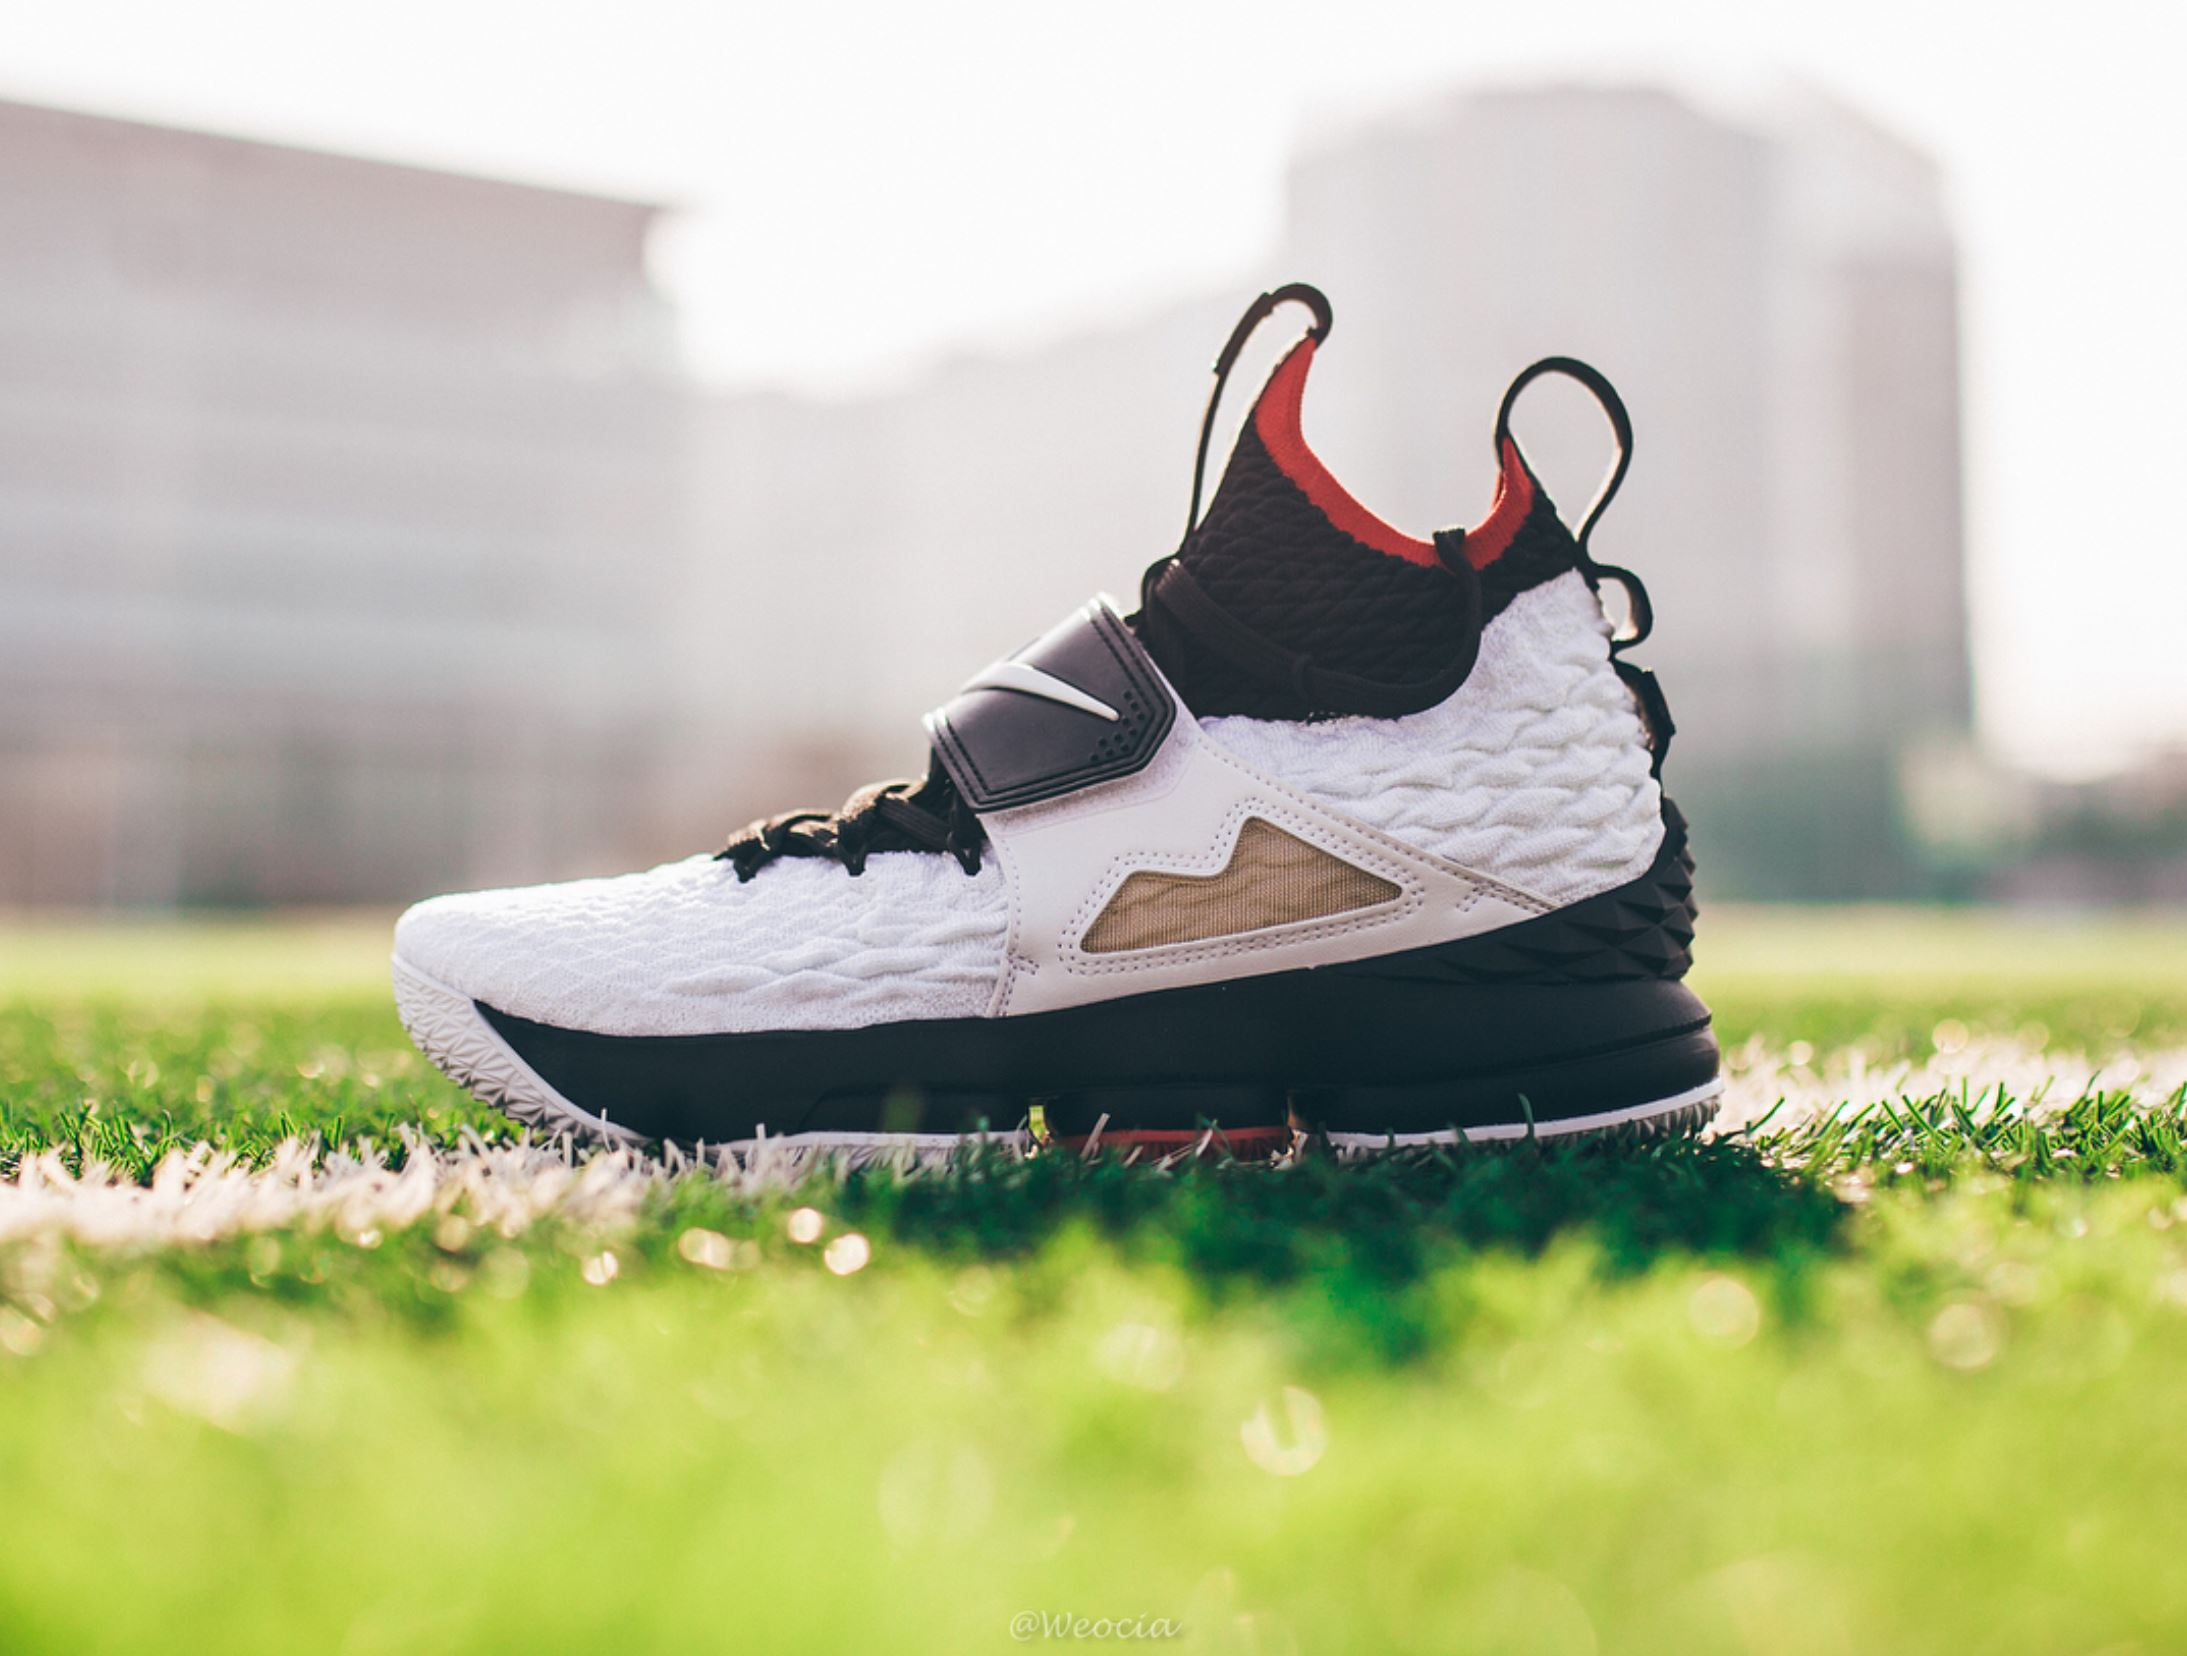 new styles 46d1d 6c1f1 Here's a Detailed Look at the Nike LeBron 15 'Diamond Turf ...